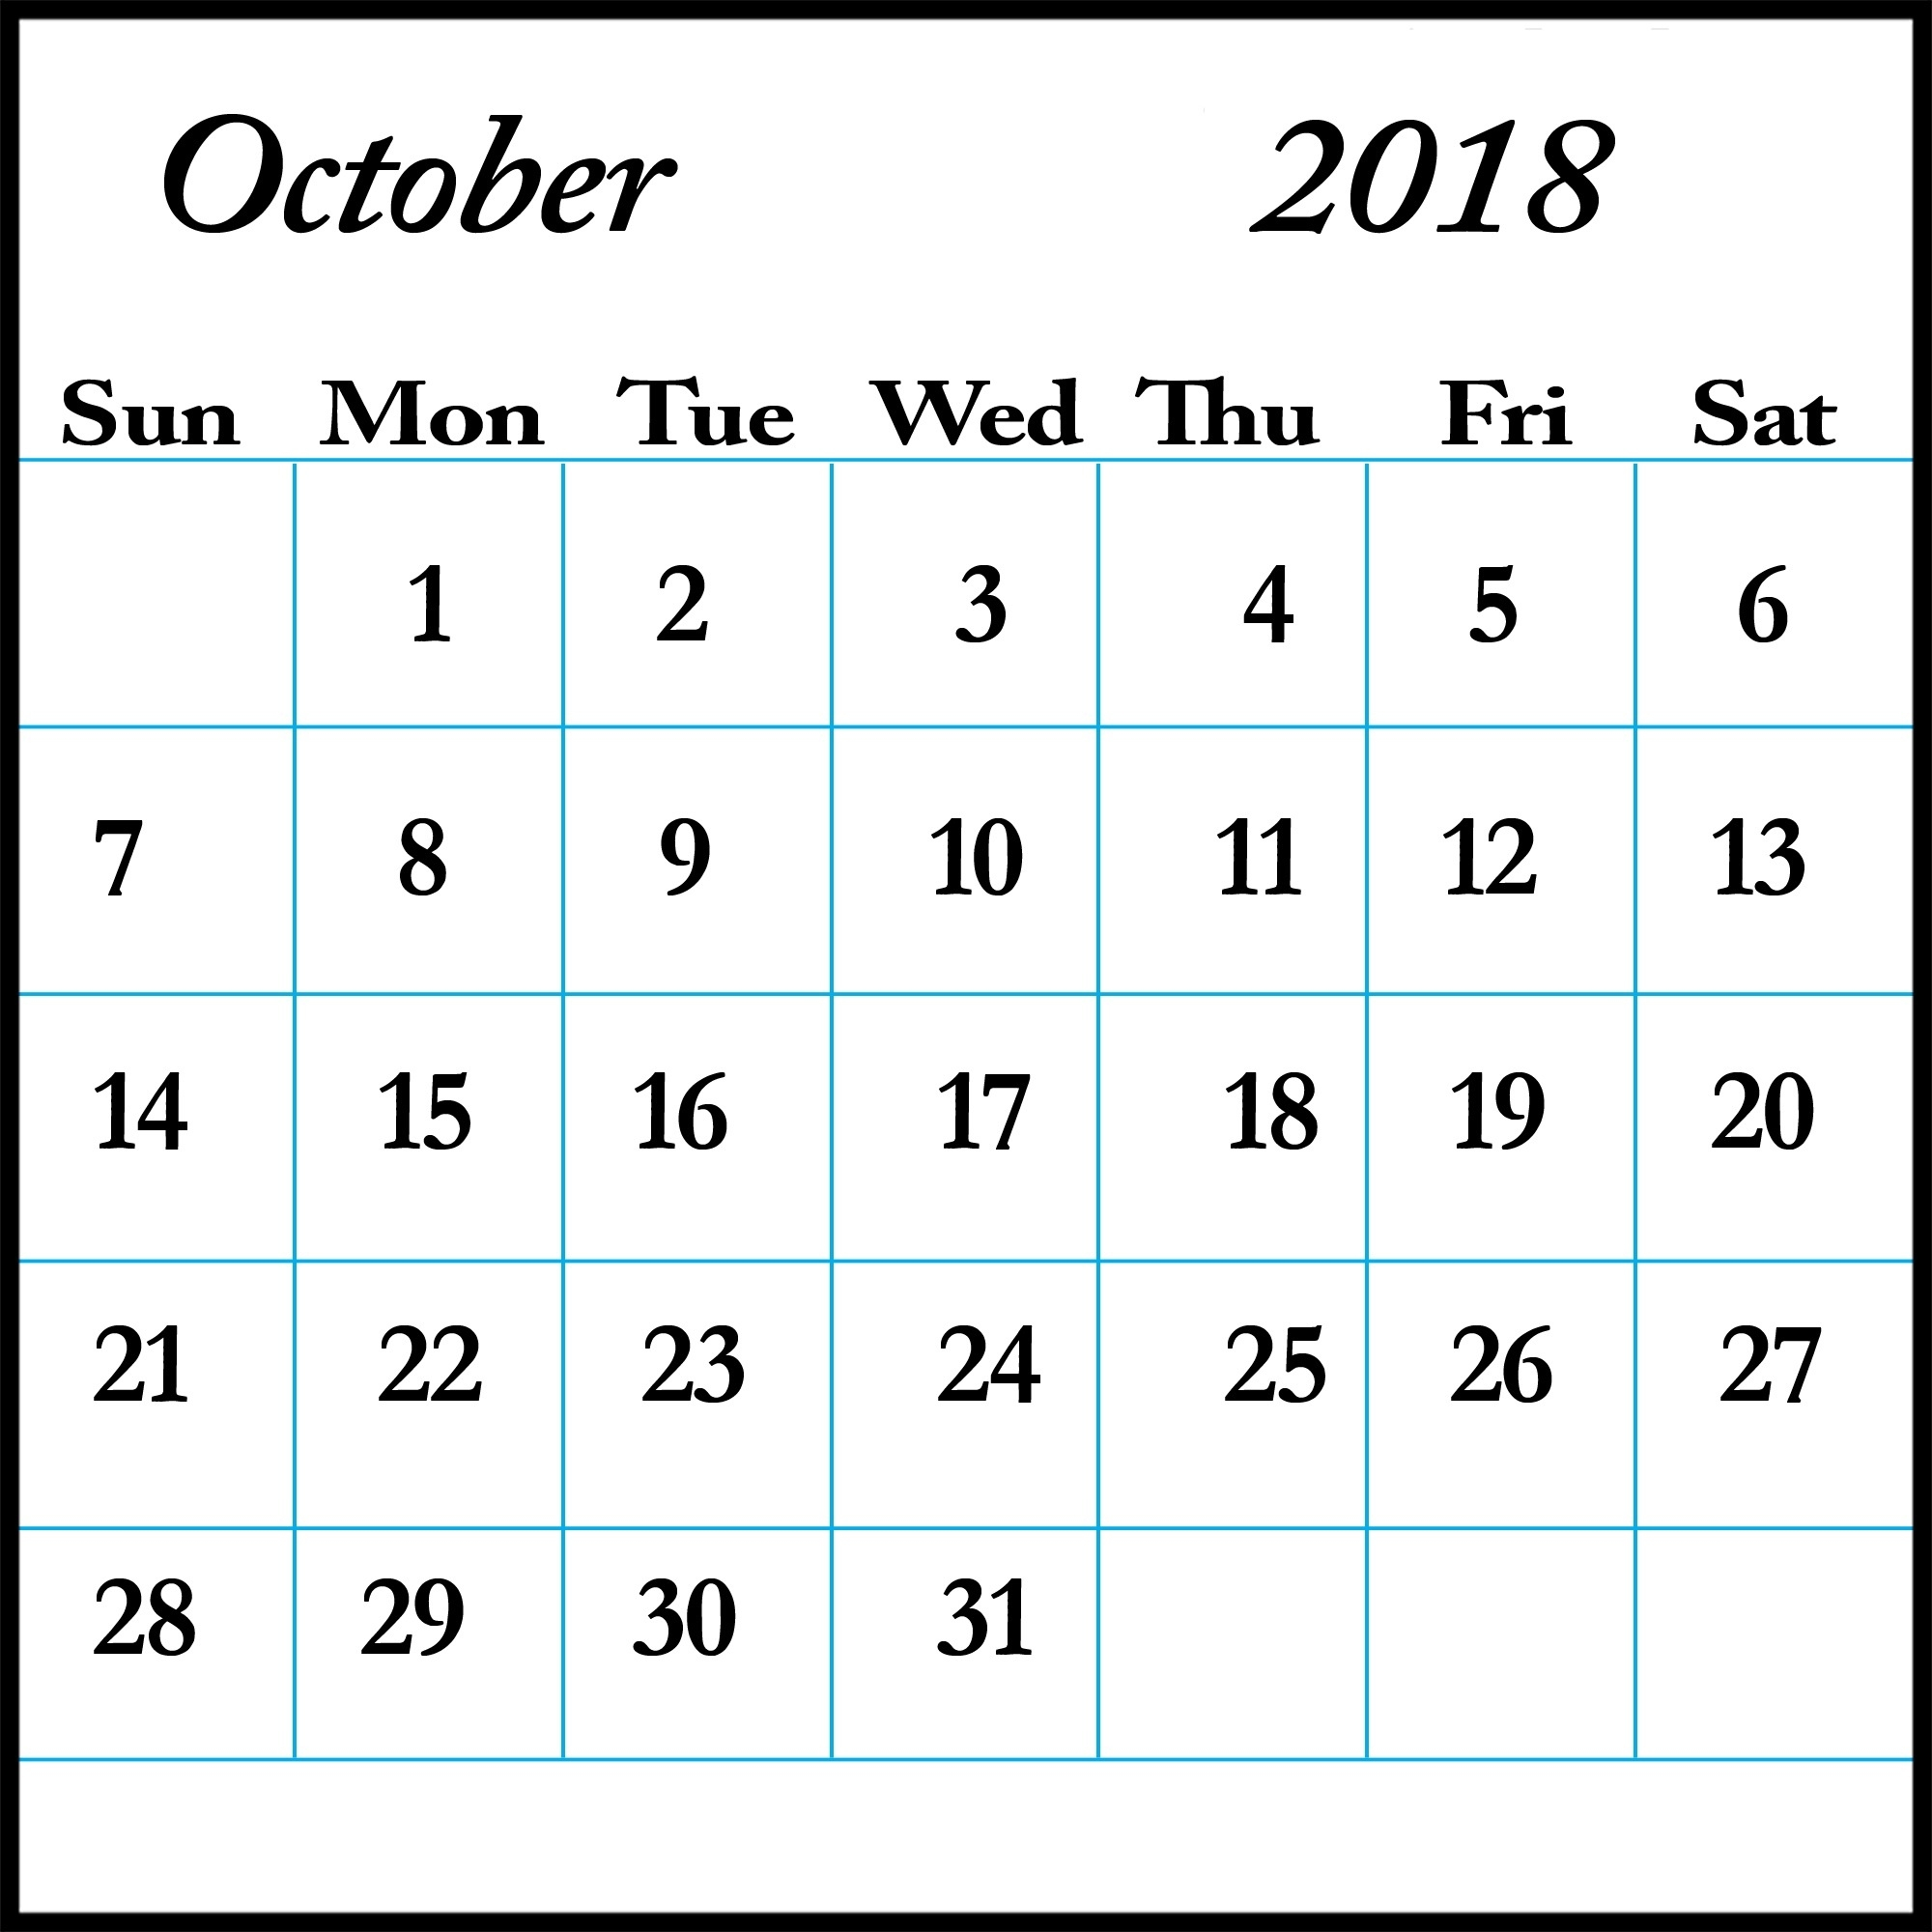 October Calendar 2018 Editable Download | Free Calendar Printable  Printable Blank Monthly Calendar With Lines For Purse